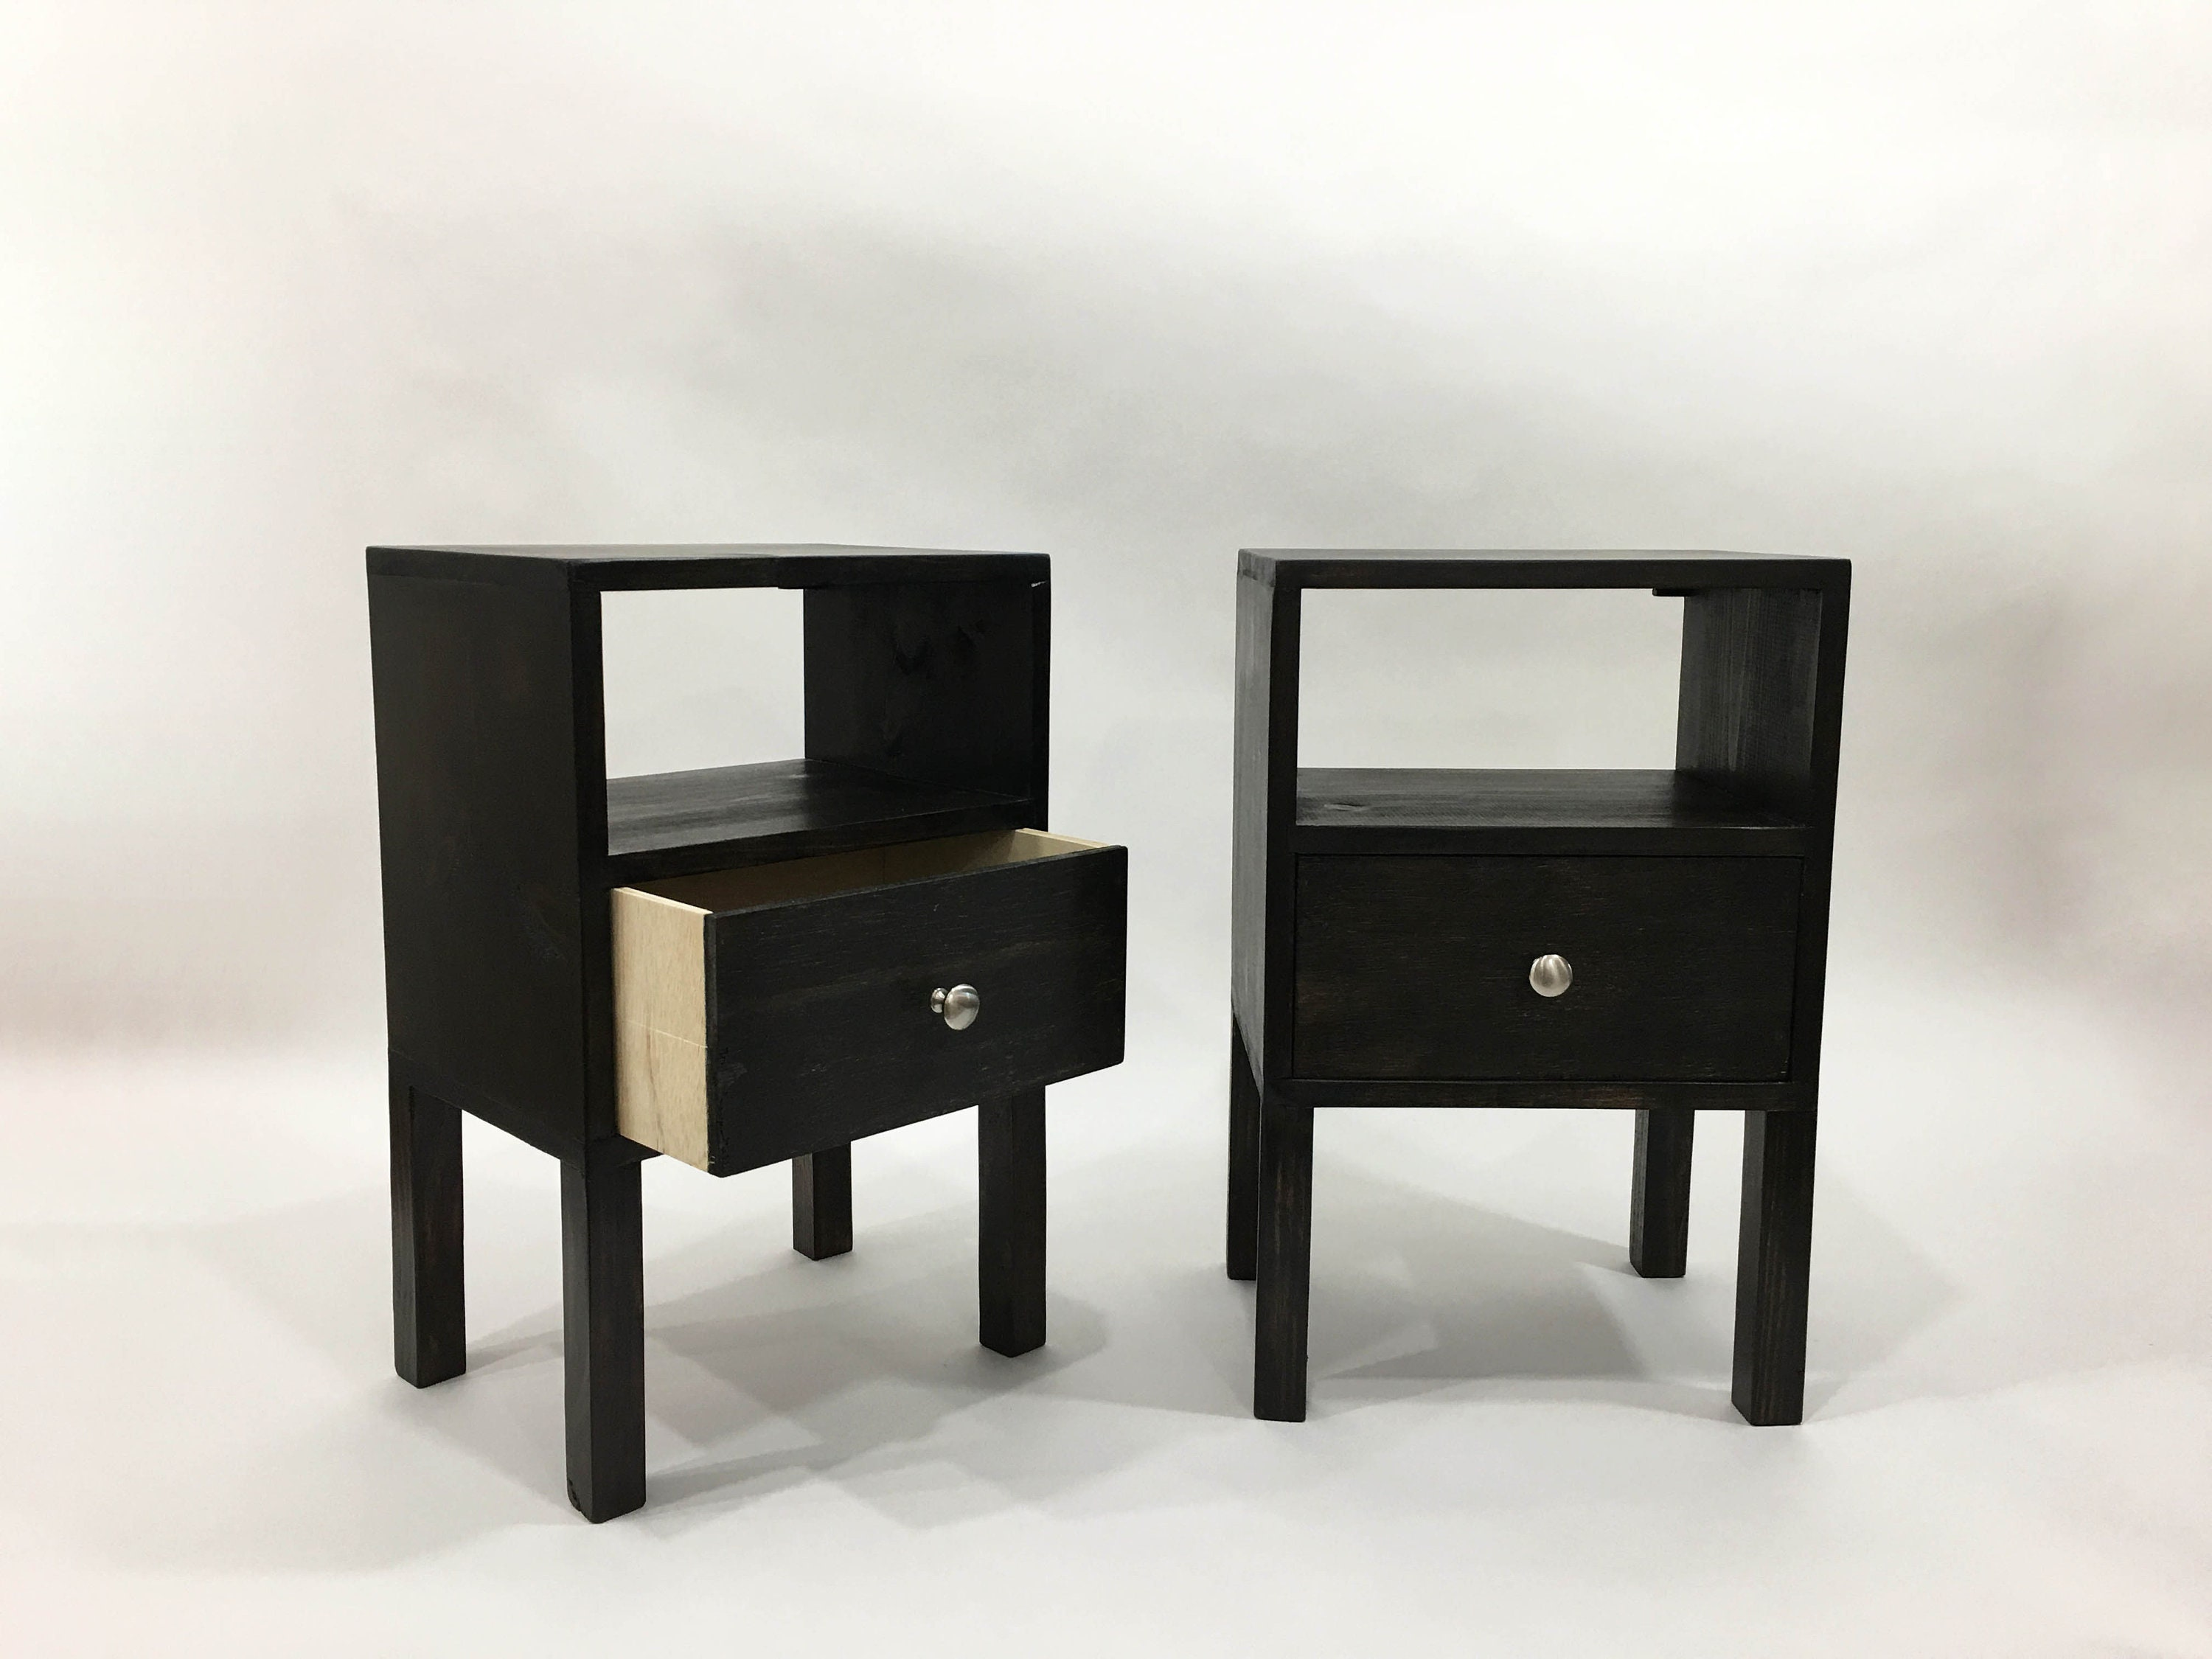 Charmant Pair Of Black Tables, Square Wood Nightstands, Set Of 2 Nightstands, Pair  Of Tables, Bedside Table, Reclaimed Wood Side Table, End Table